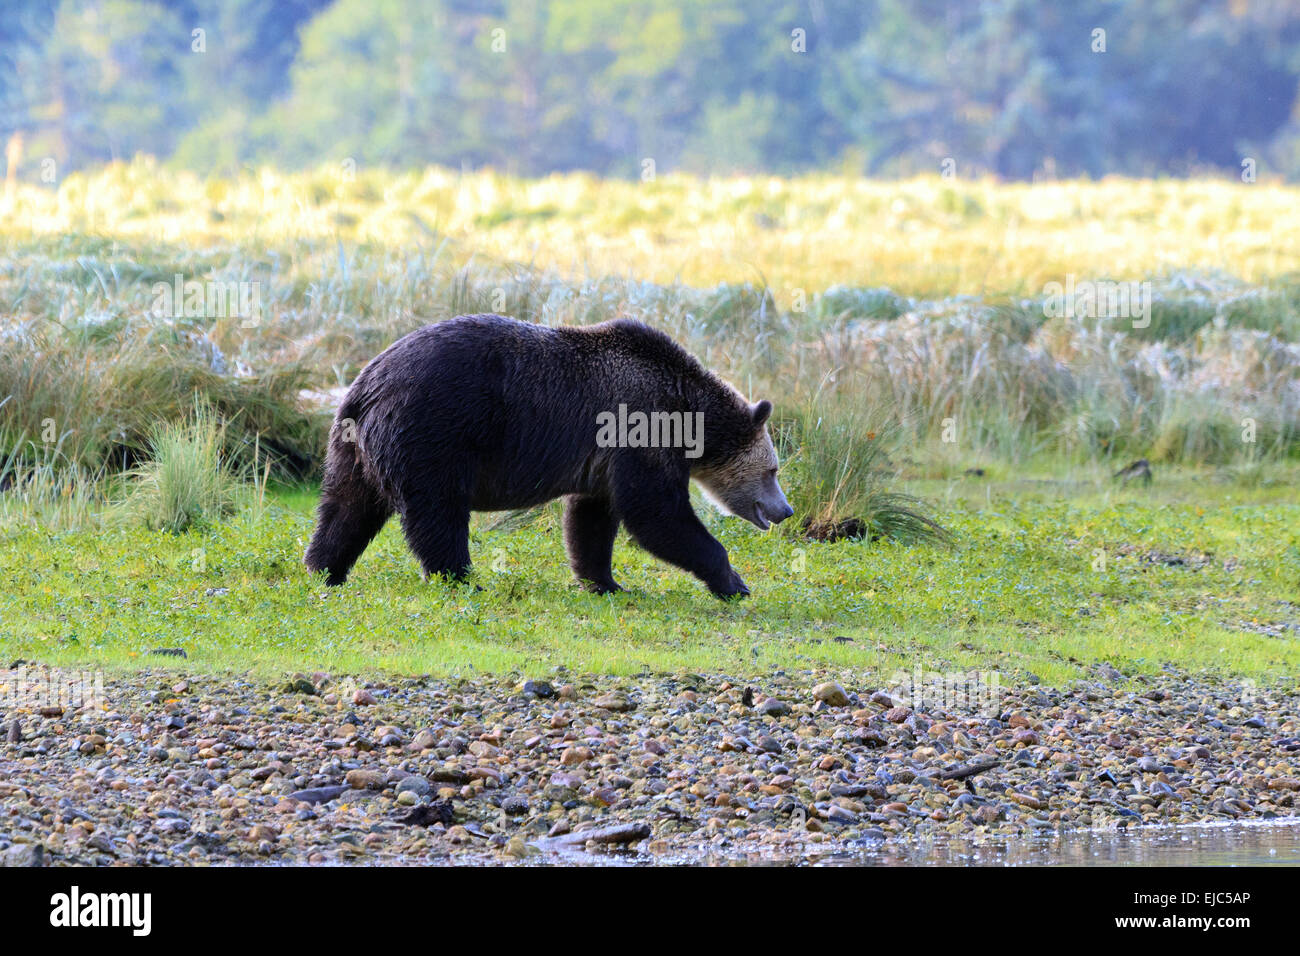 Graulich Stock Photos & Graulich Stock Images - Page 2 - Alamy